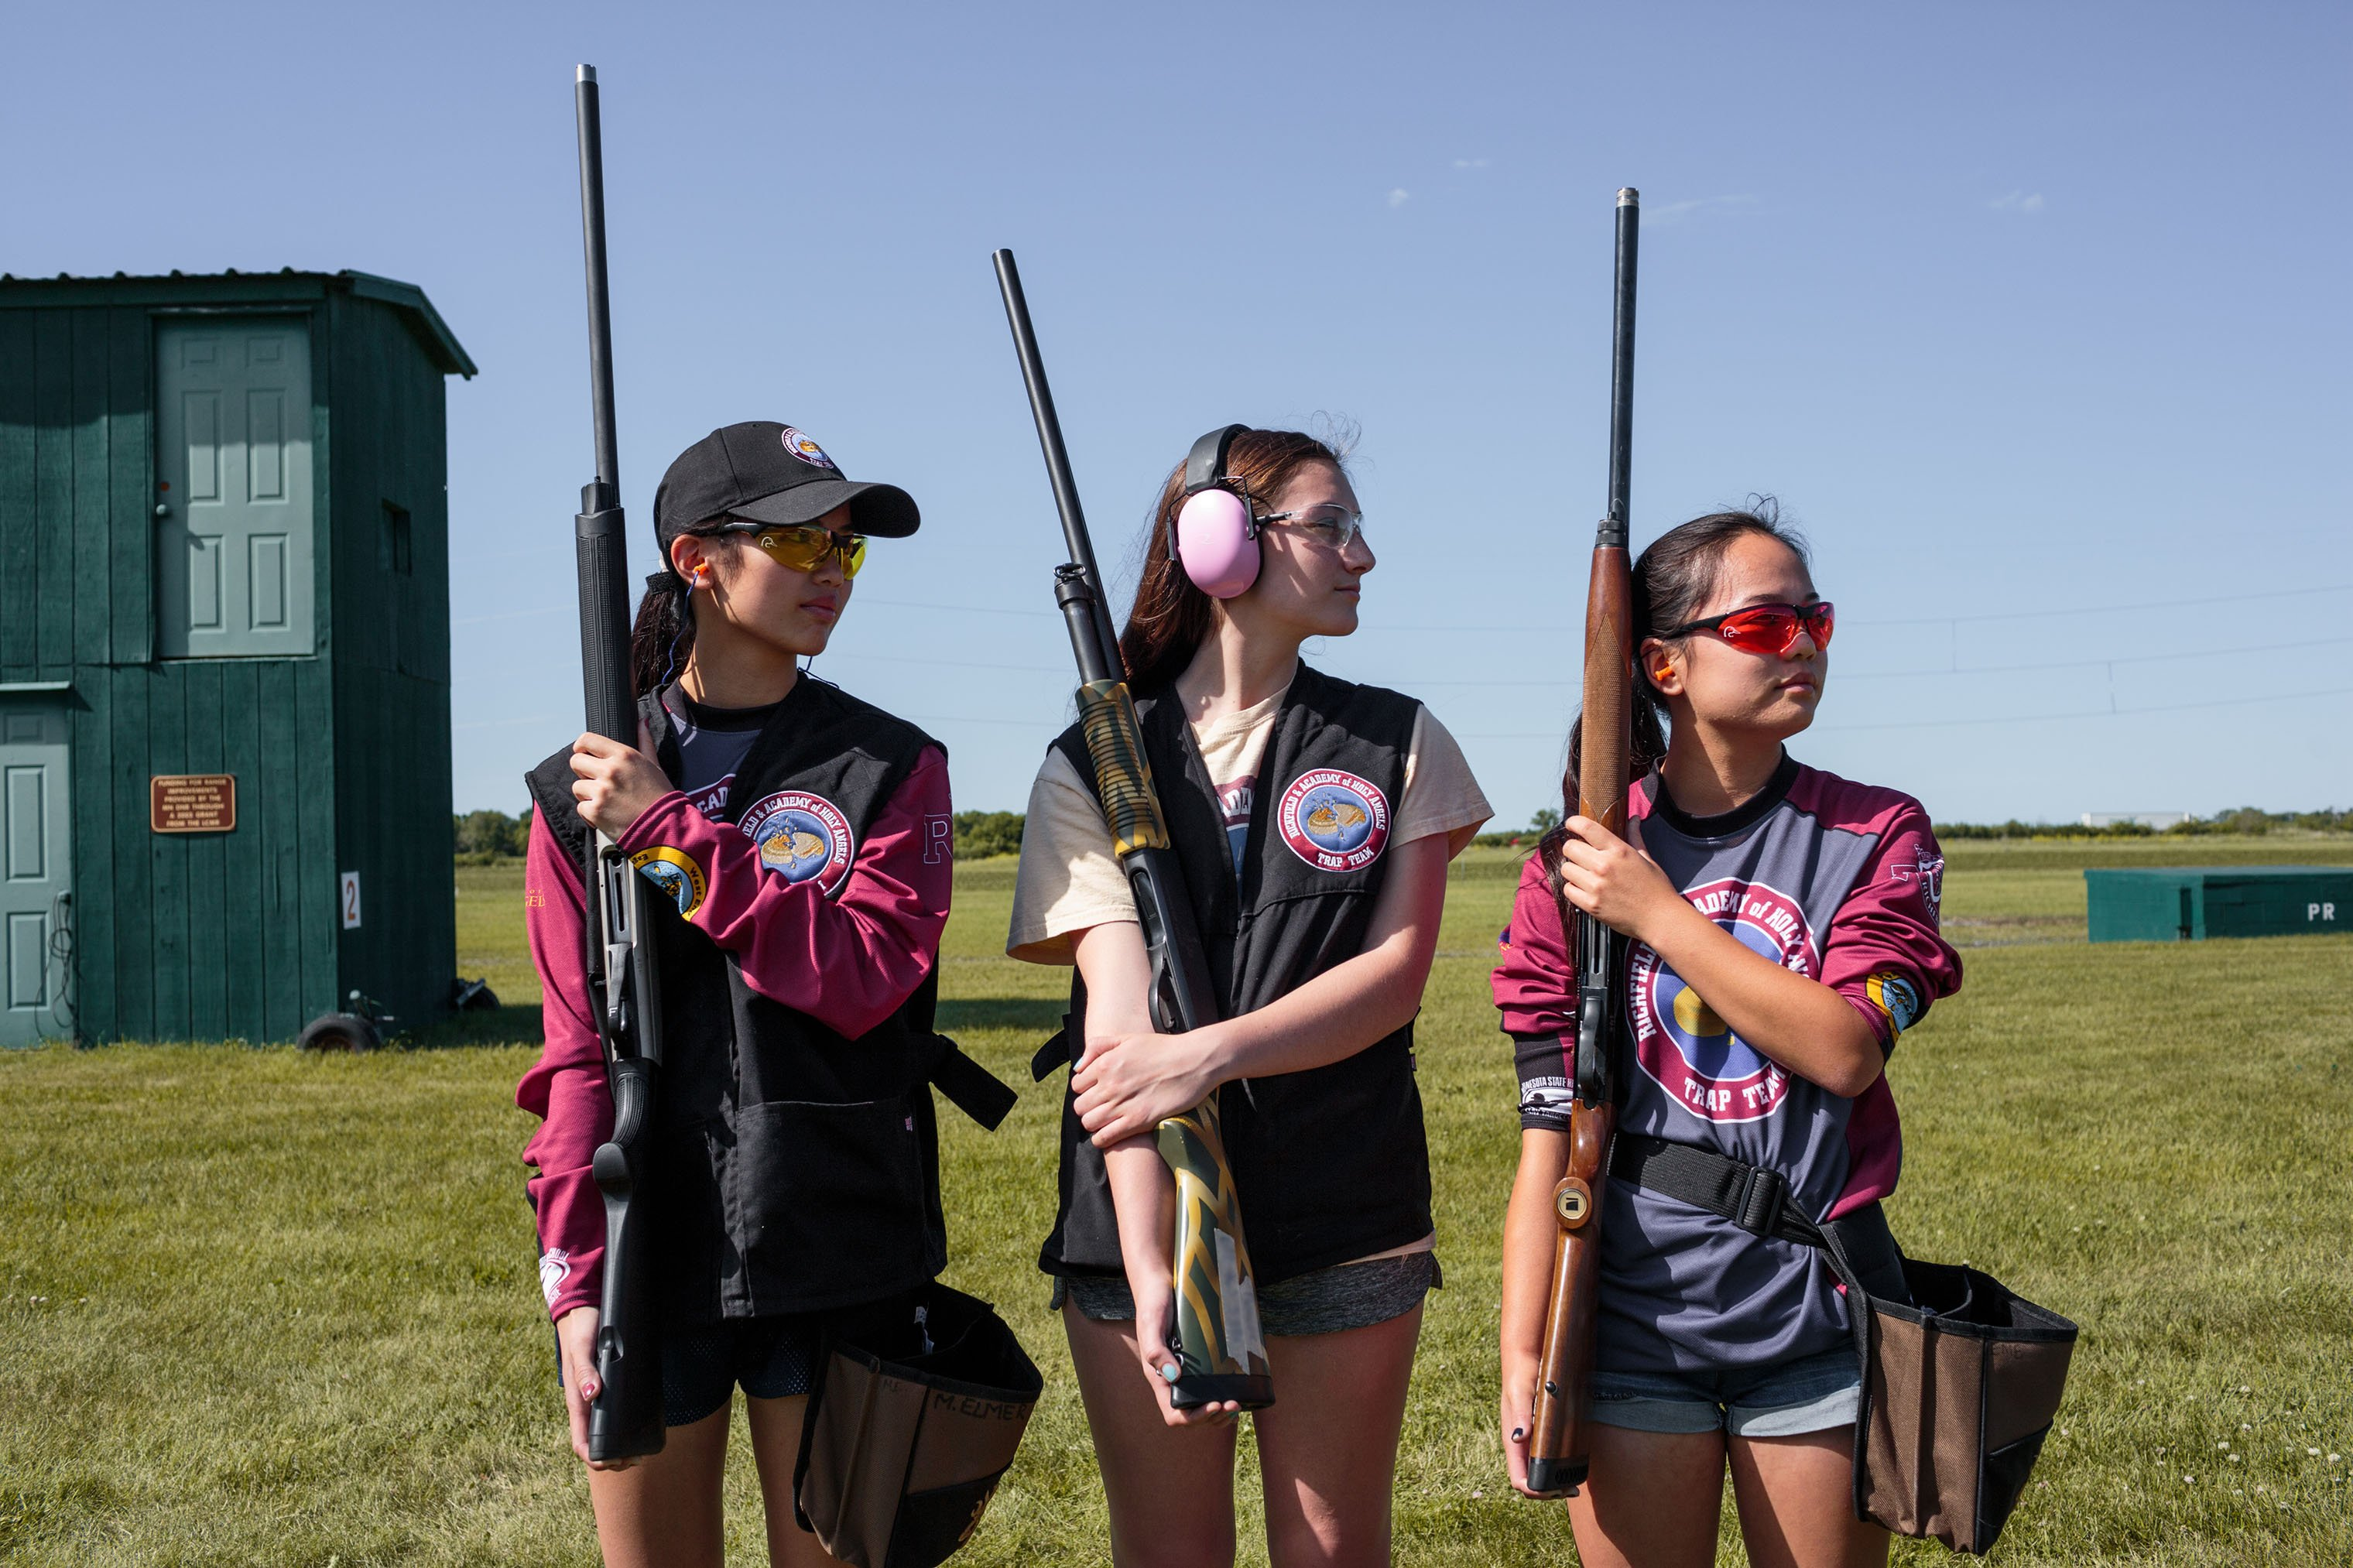 TIME: High School Shooting Teams Are Getting Wildly Popular — And the NRA Is Helping